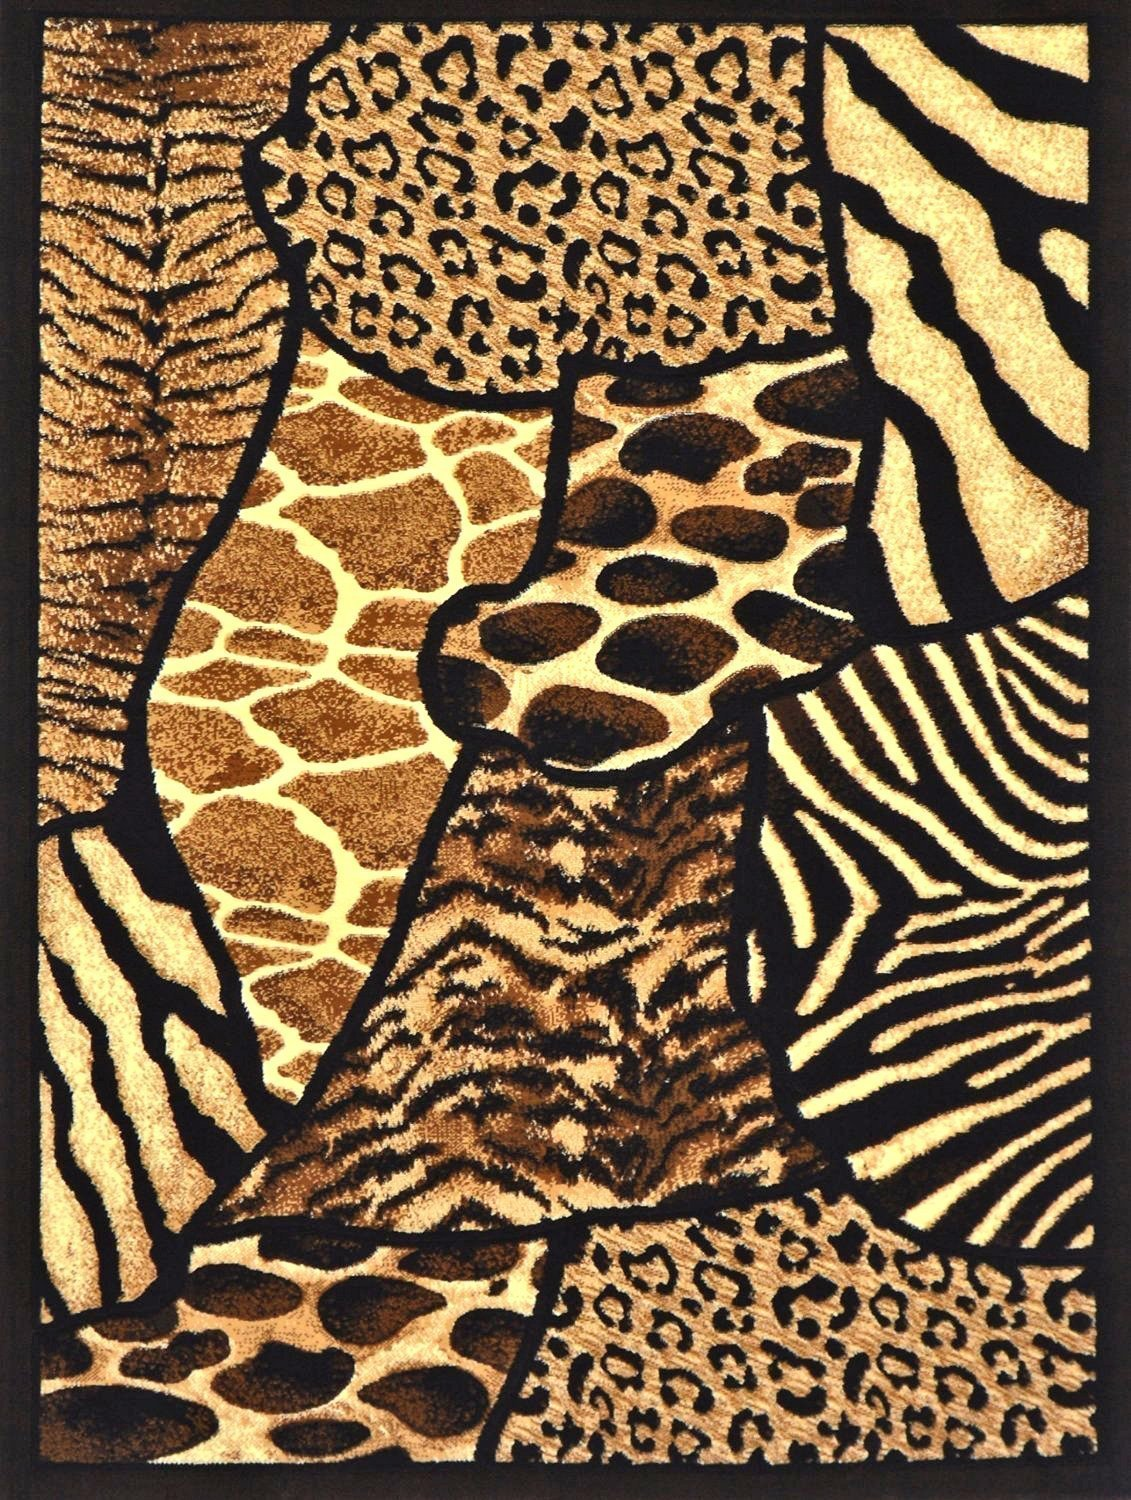 Rugs 4 Less Collection Animal Skin Prints Patchwork Leopard Area Rug R4L 70 (8'X10')